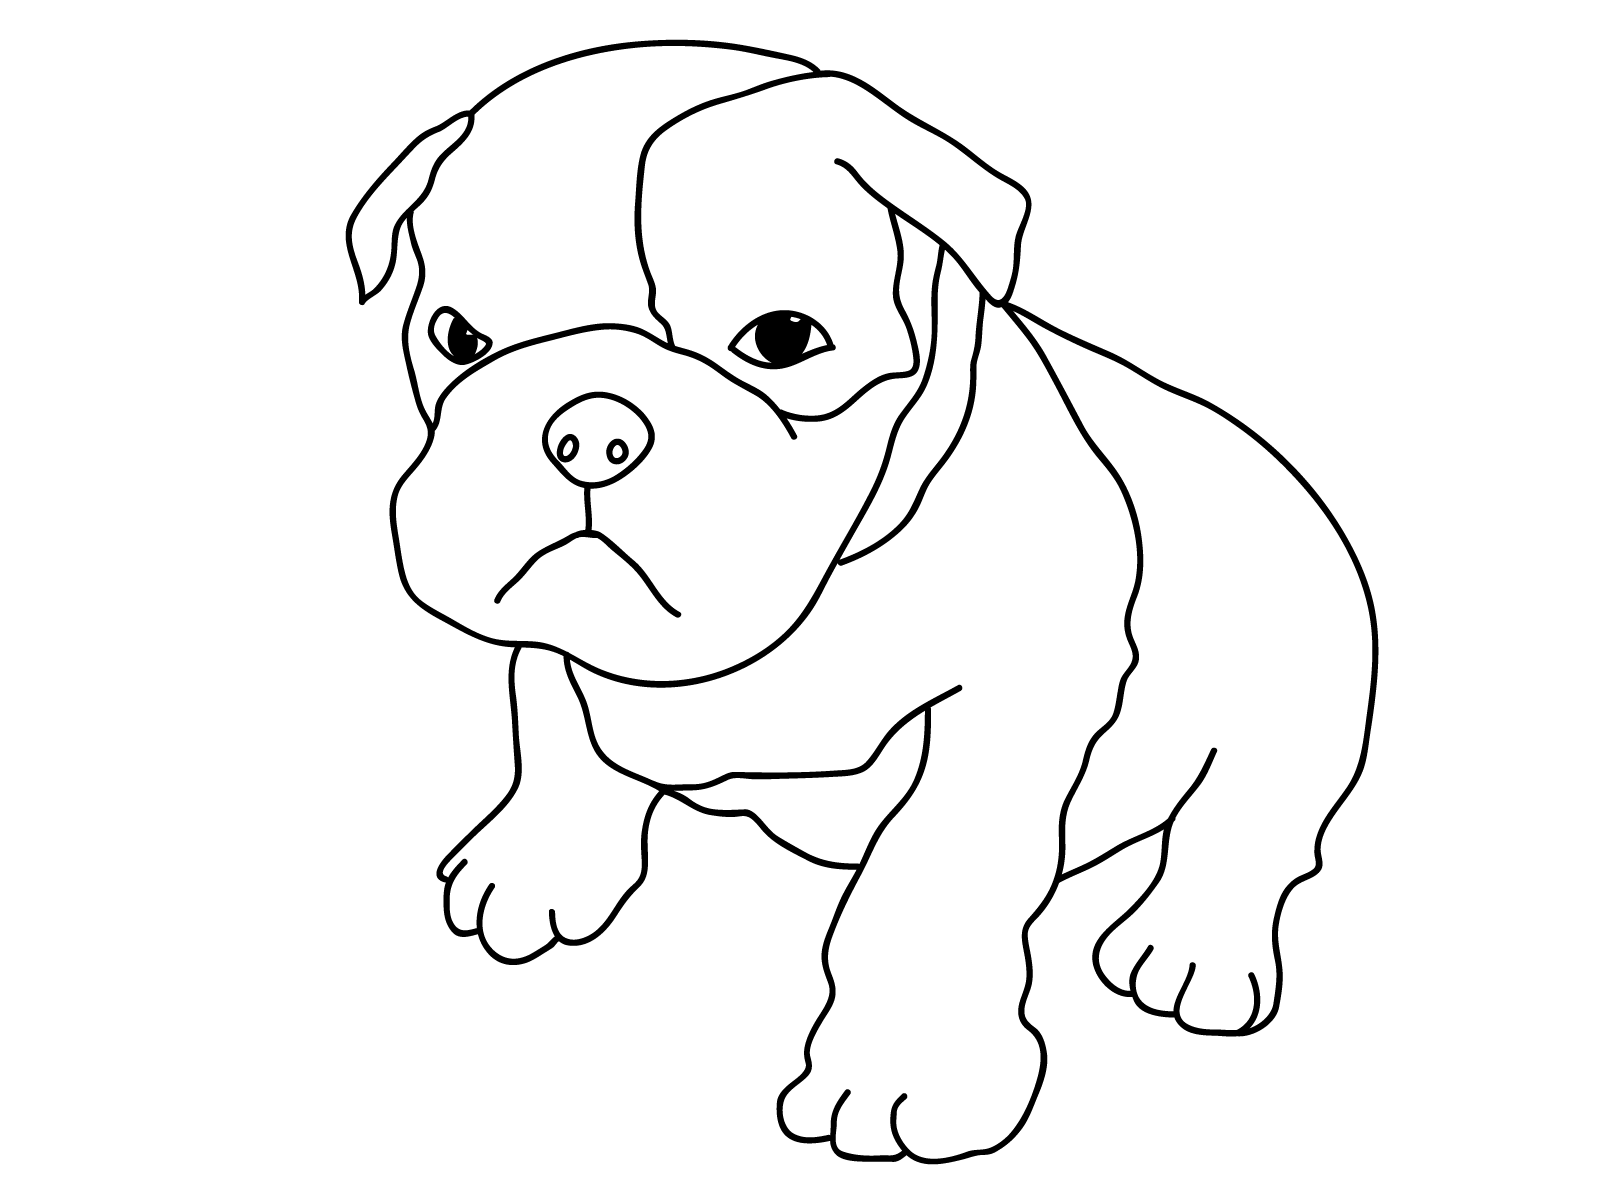 dog coloring pages for toddlers puppy coloring pages best coloring pages for kids for toddlers dog coloring pages